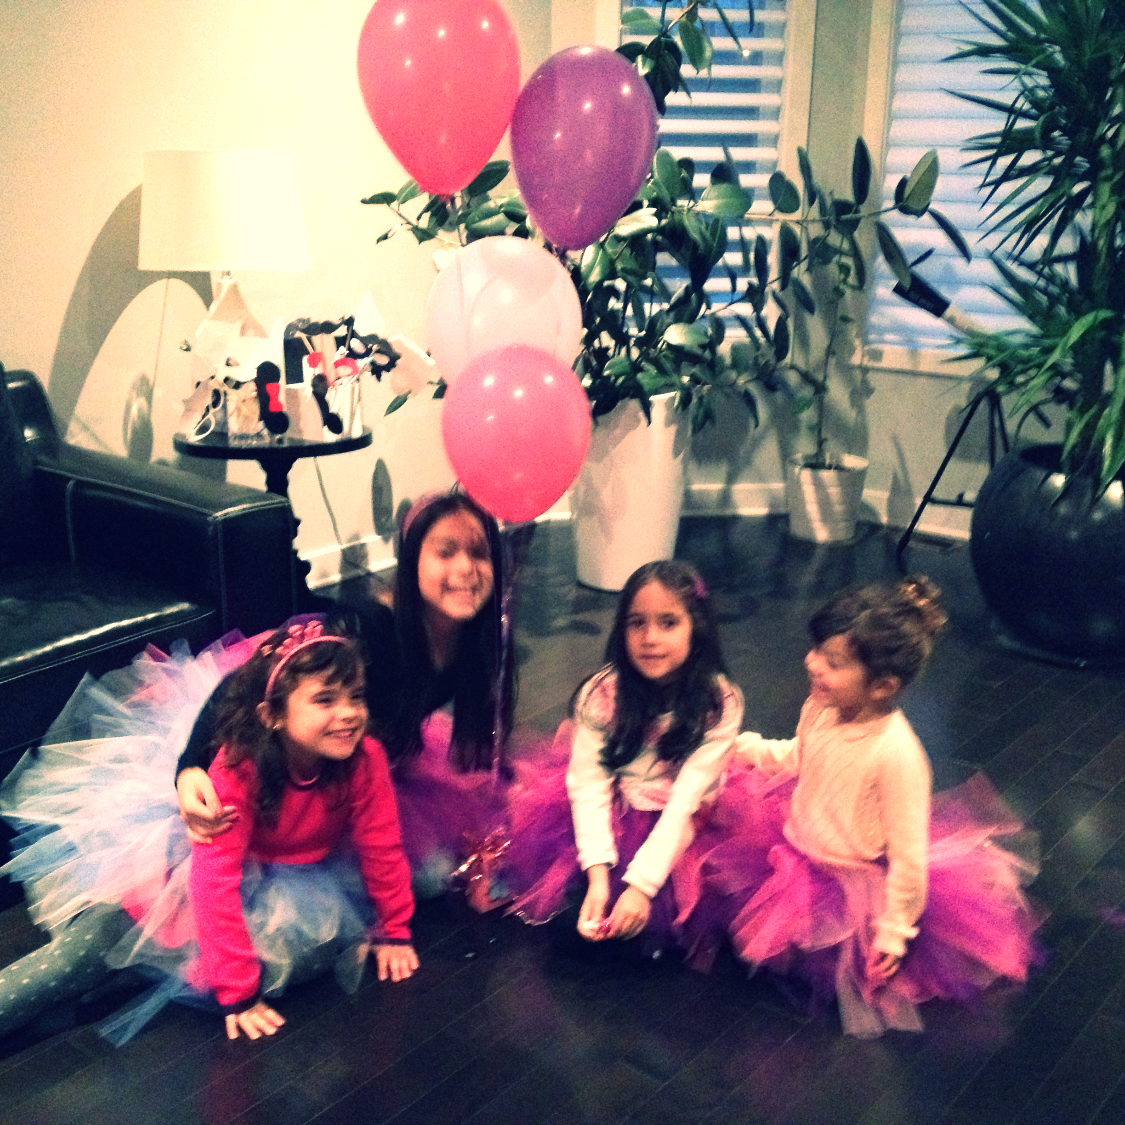 Ballerina Party: Make your own tutu!